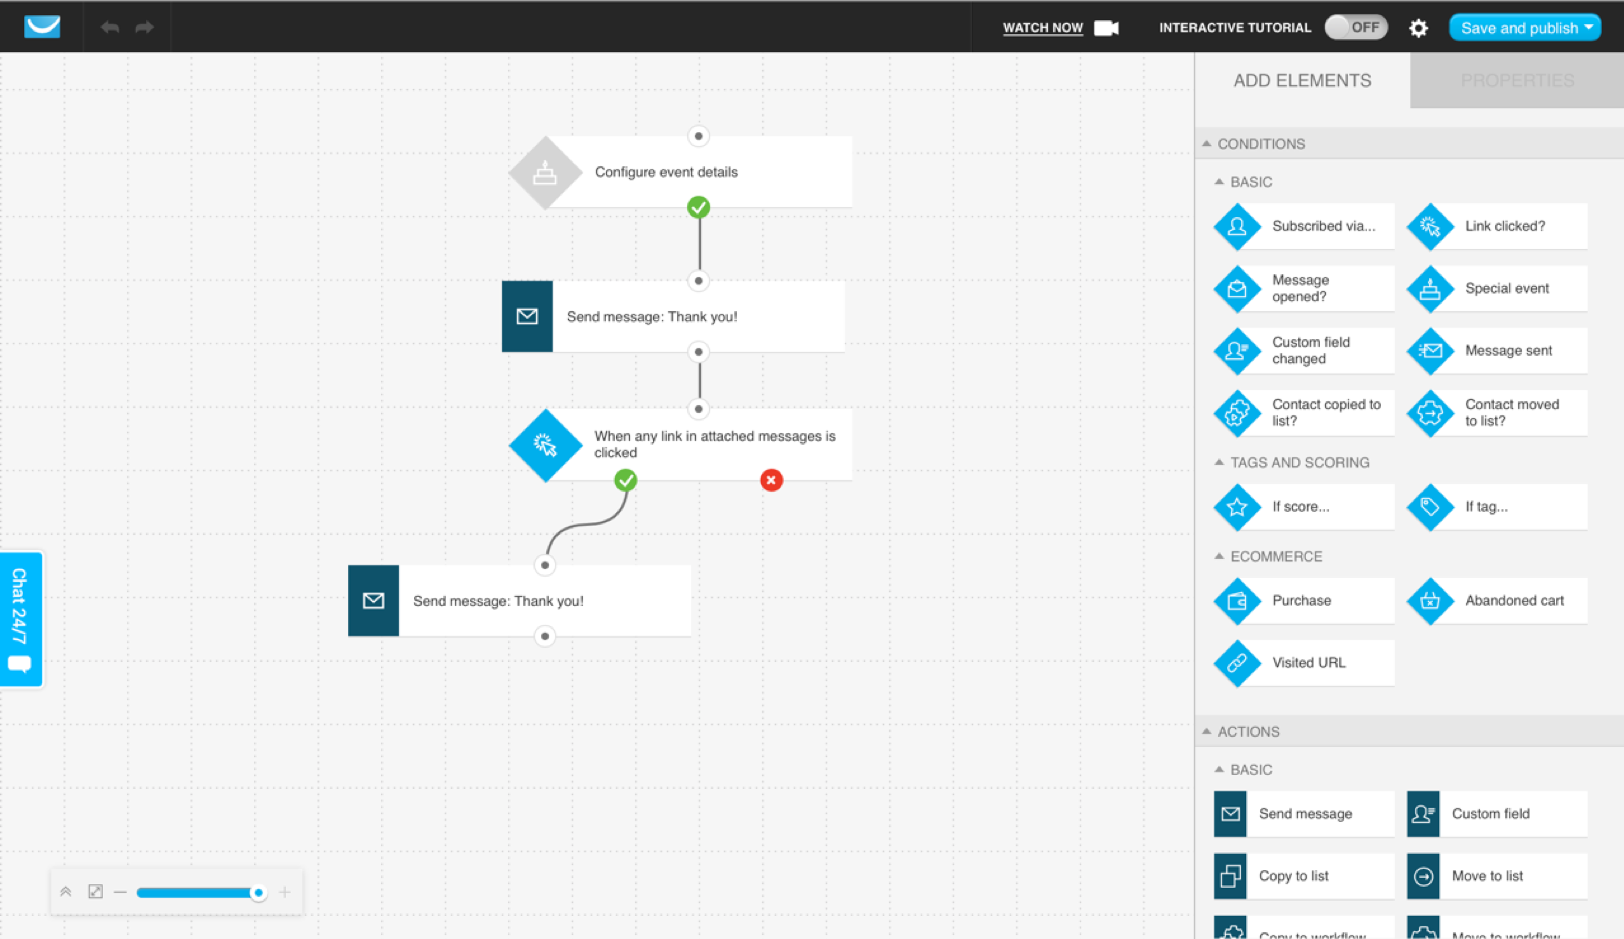 A marketing automation workflow triggered with the special event condition